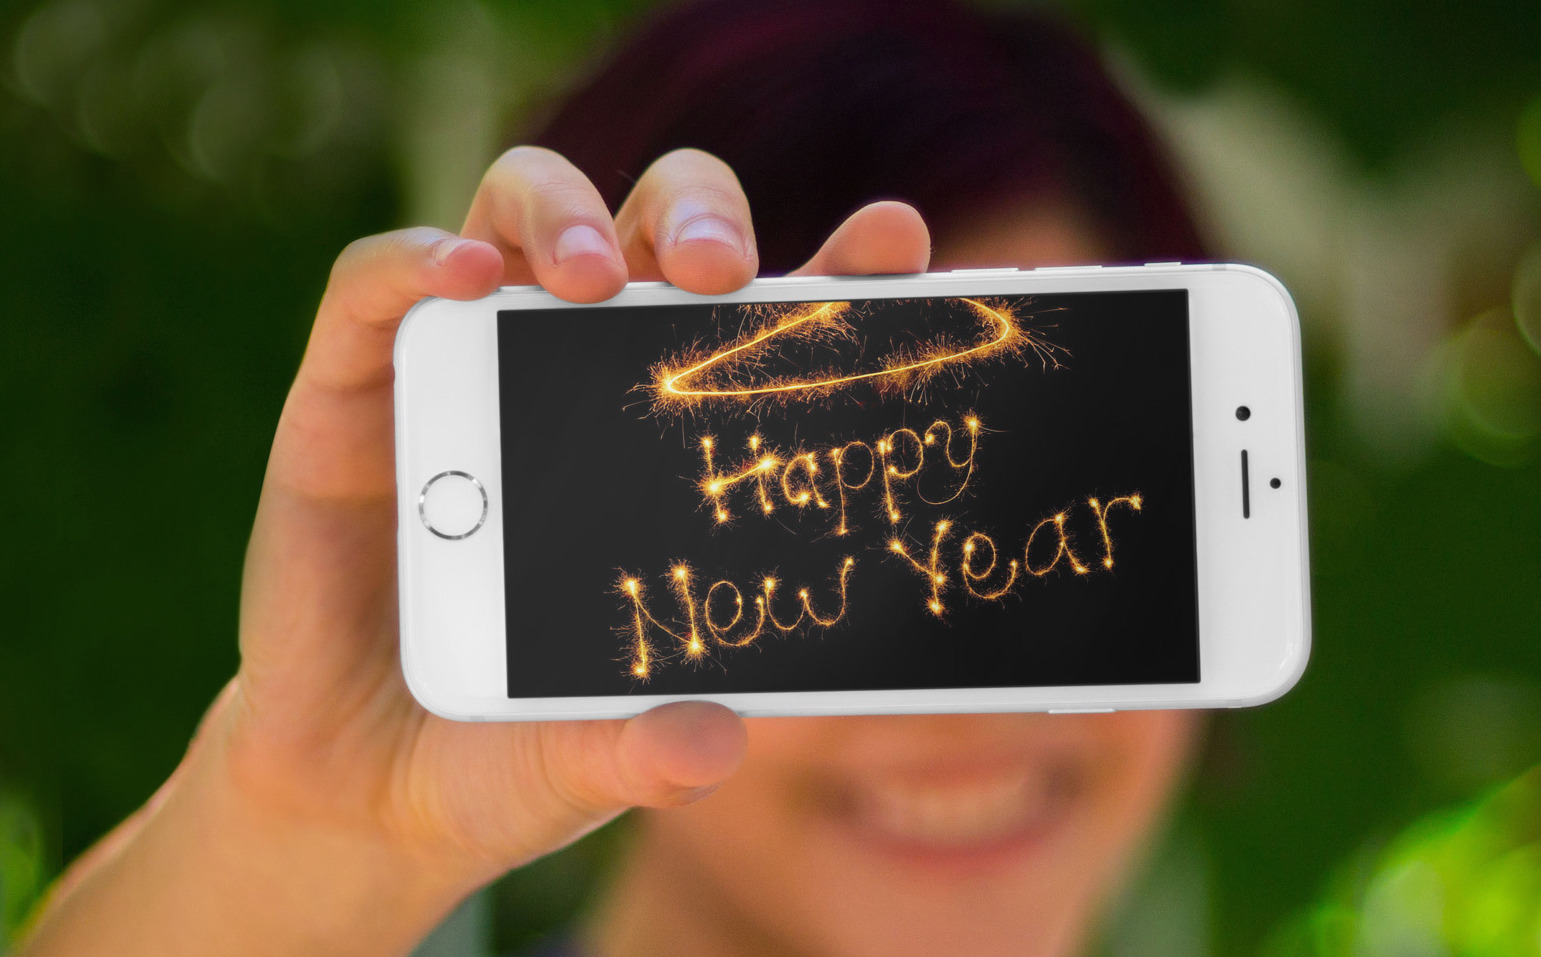 Happy new year iPhone 6